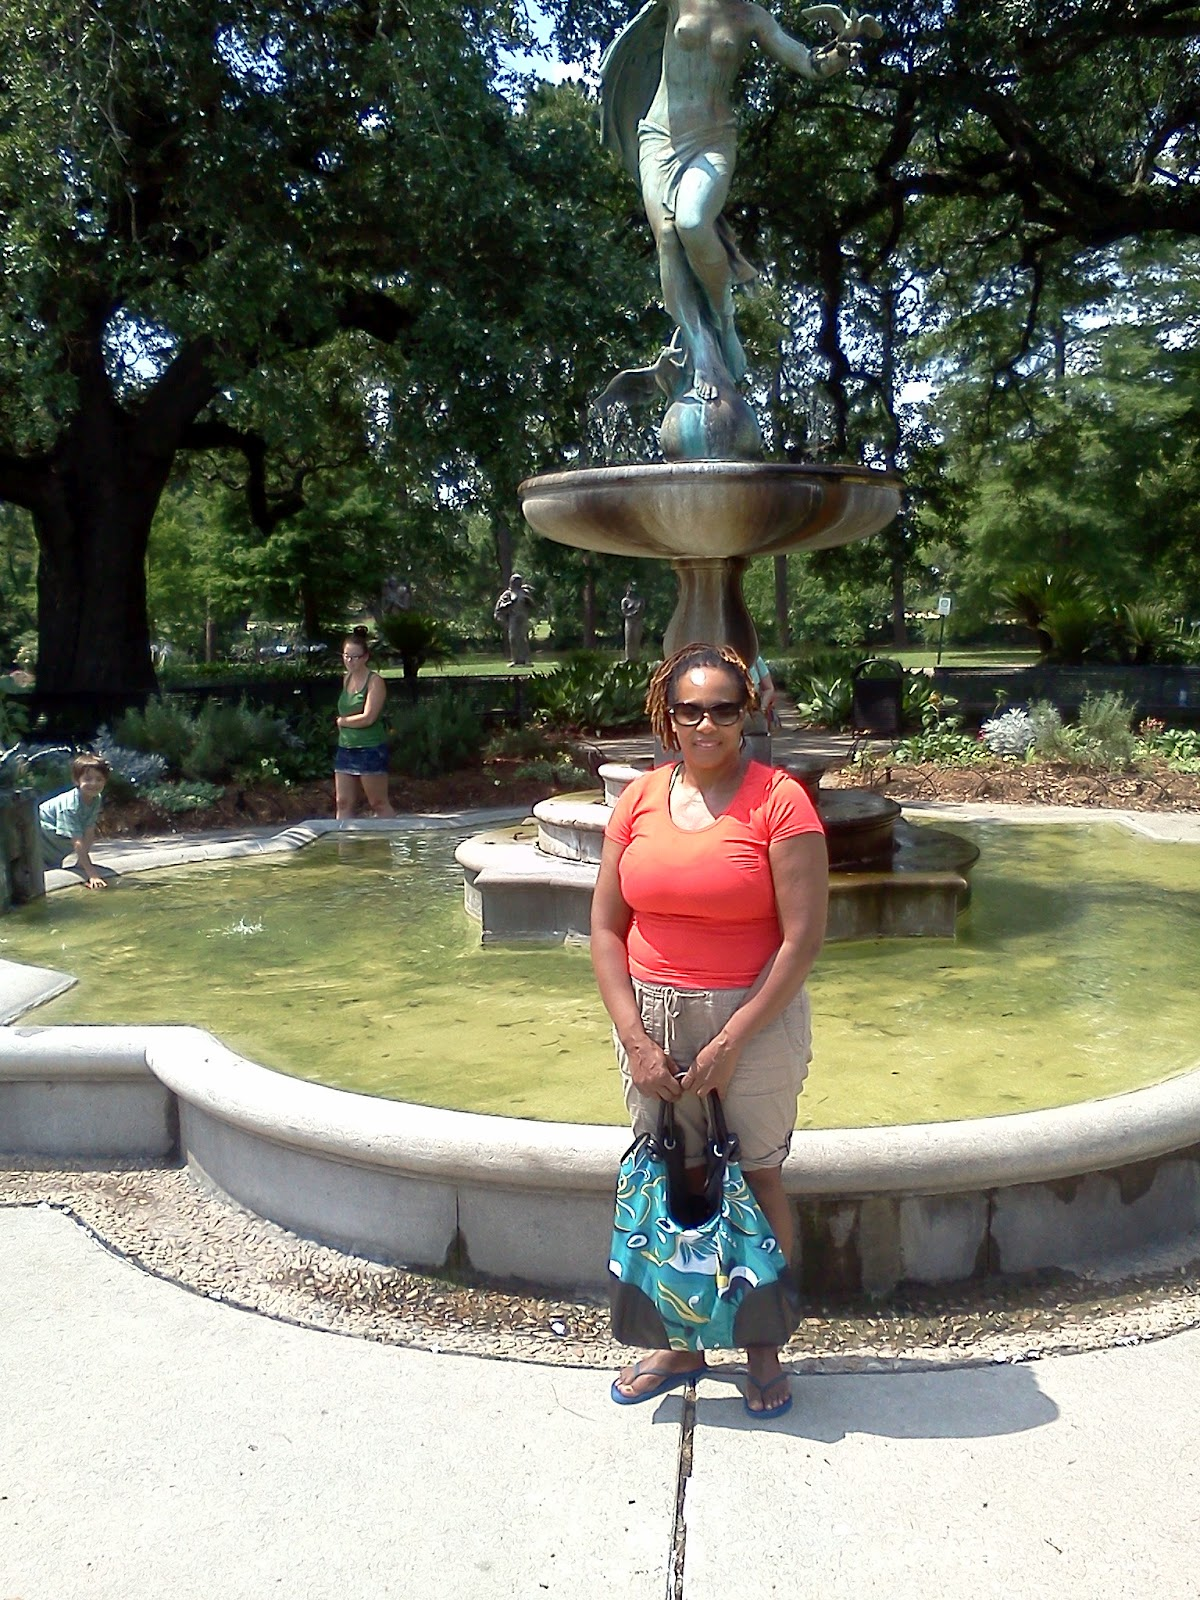 SkychiTravels in front of a fountain at Audubon Park